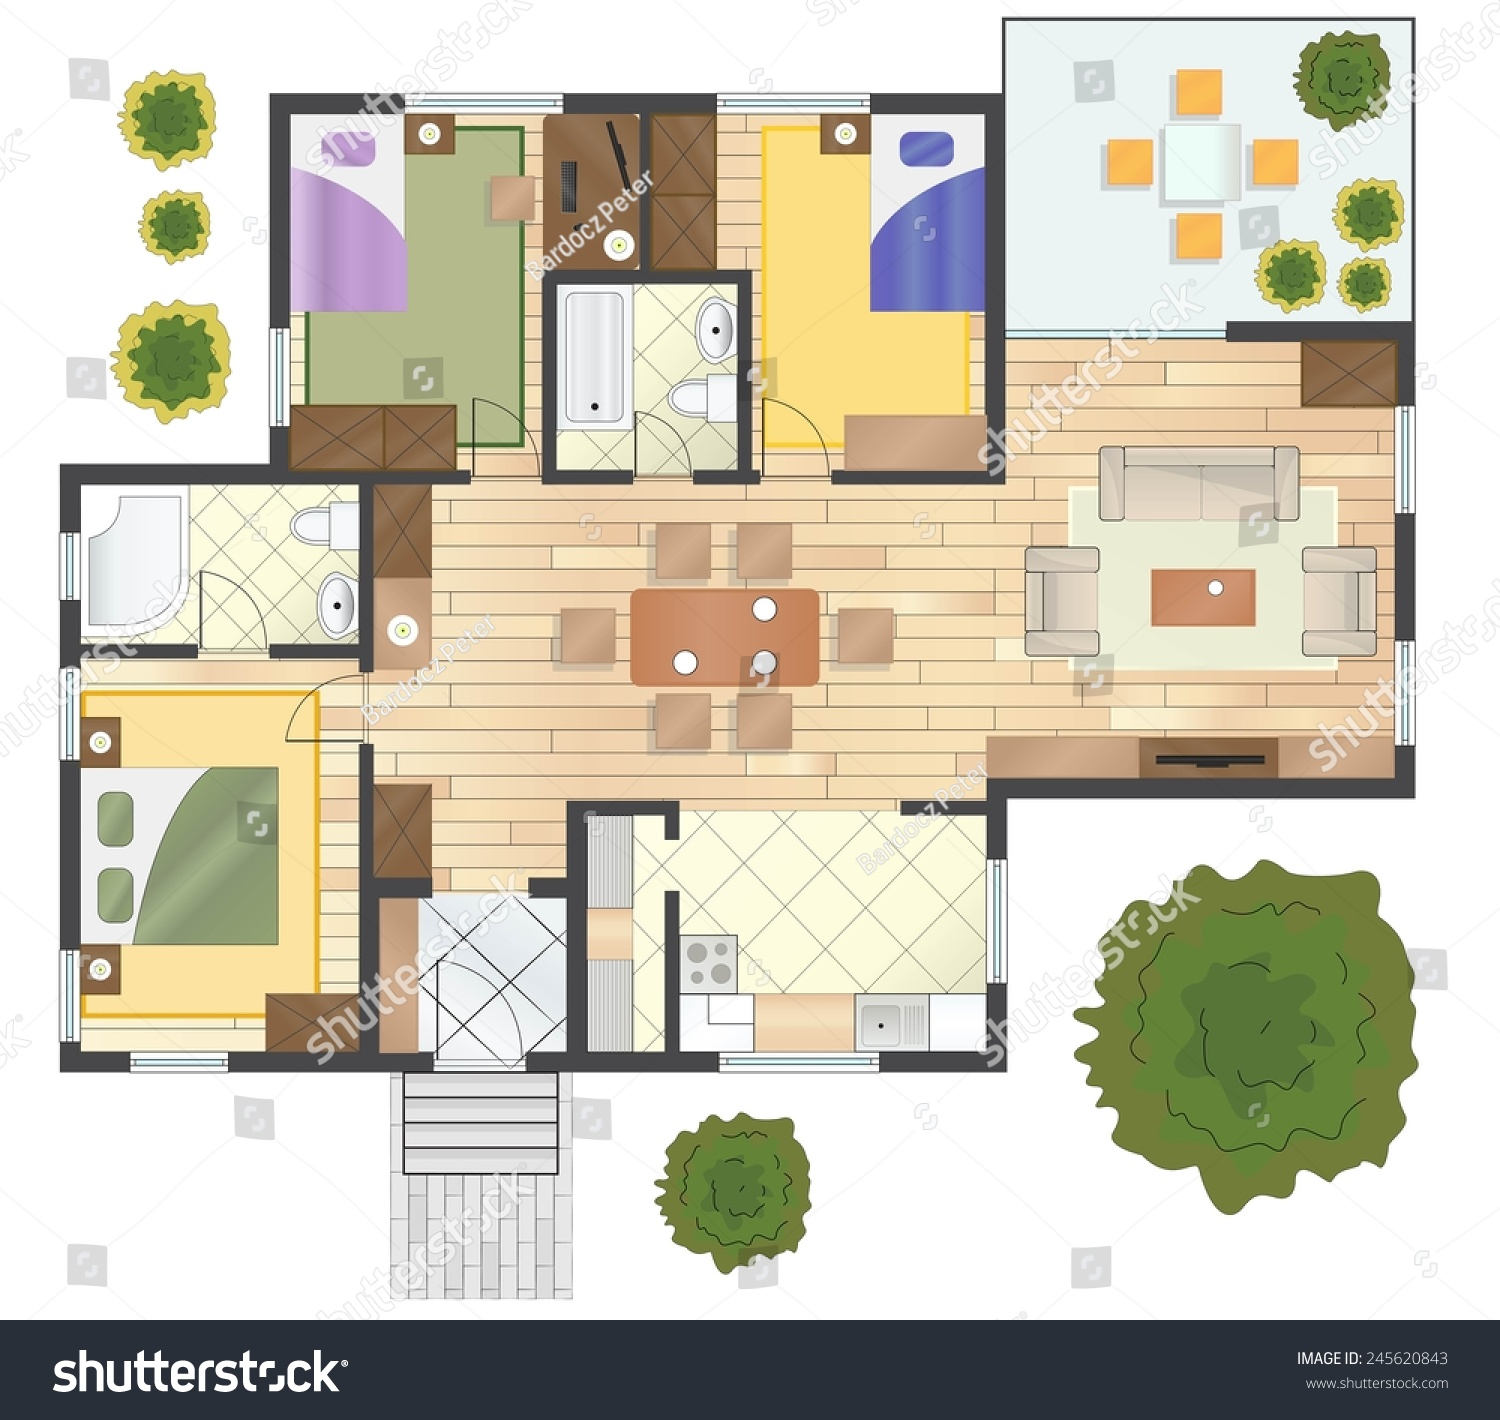 Colorful floor plan of a house stock vector illustration 245620843 shutterstock - Colorful house plans ...